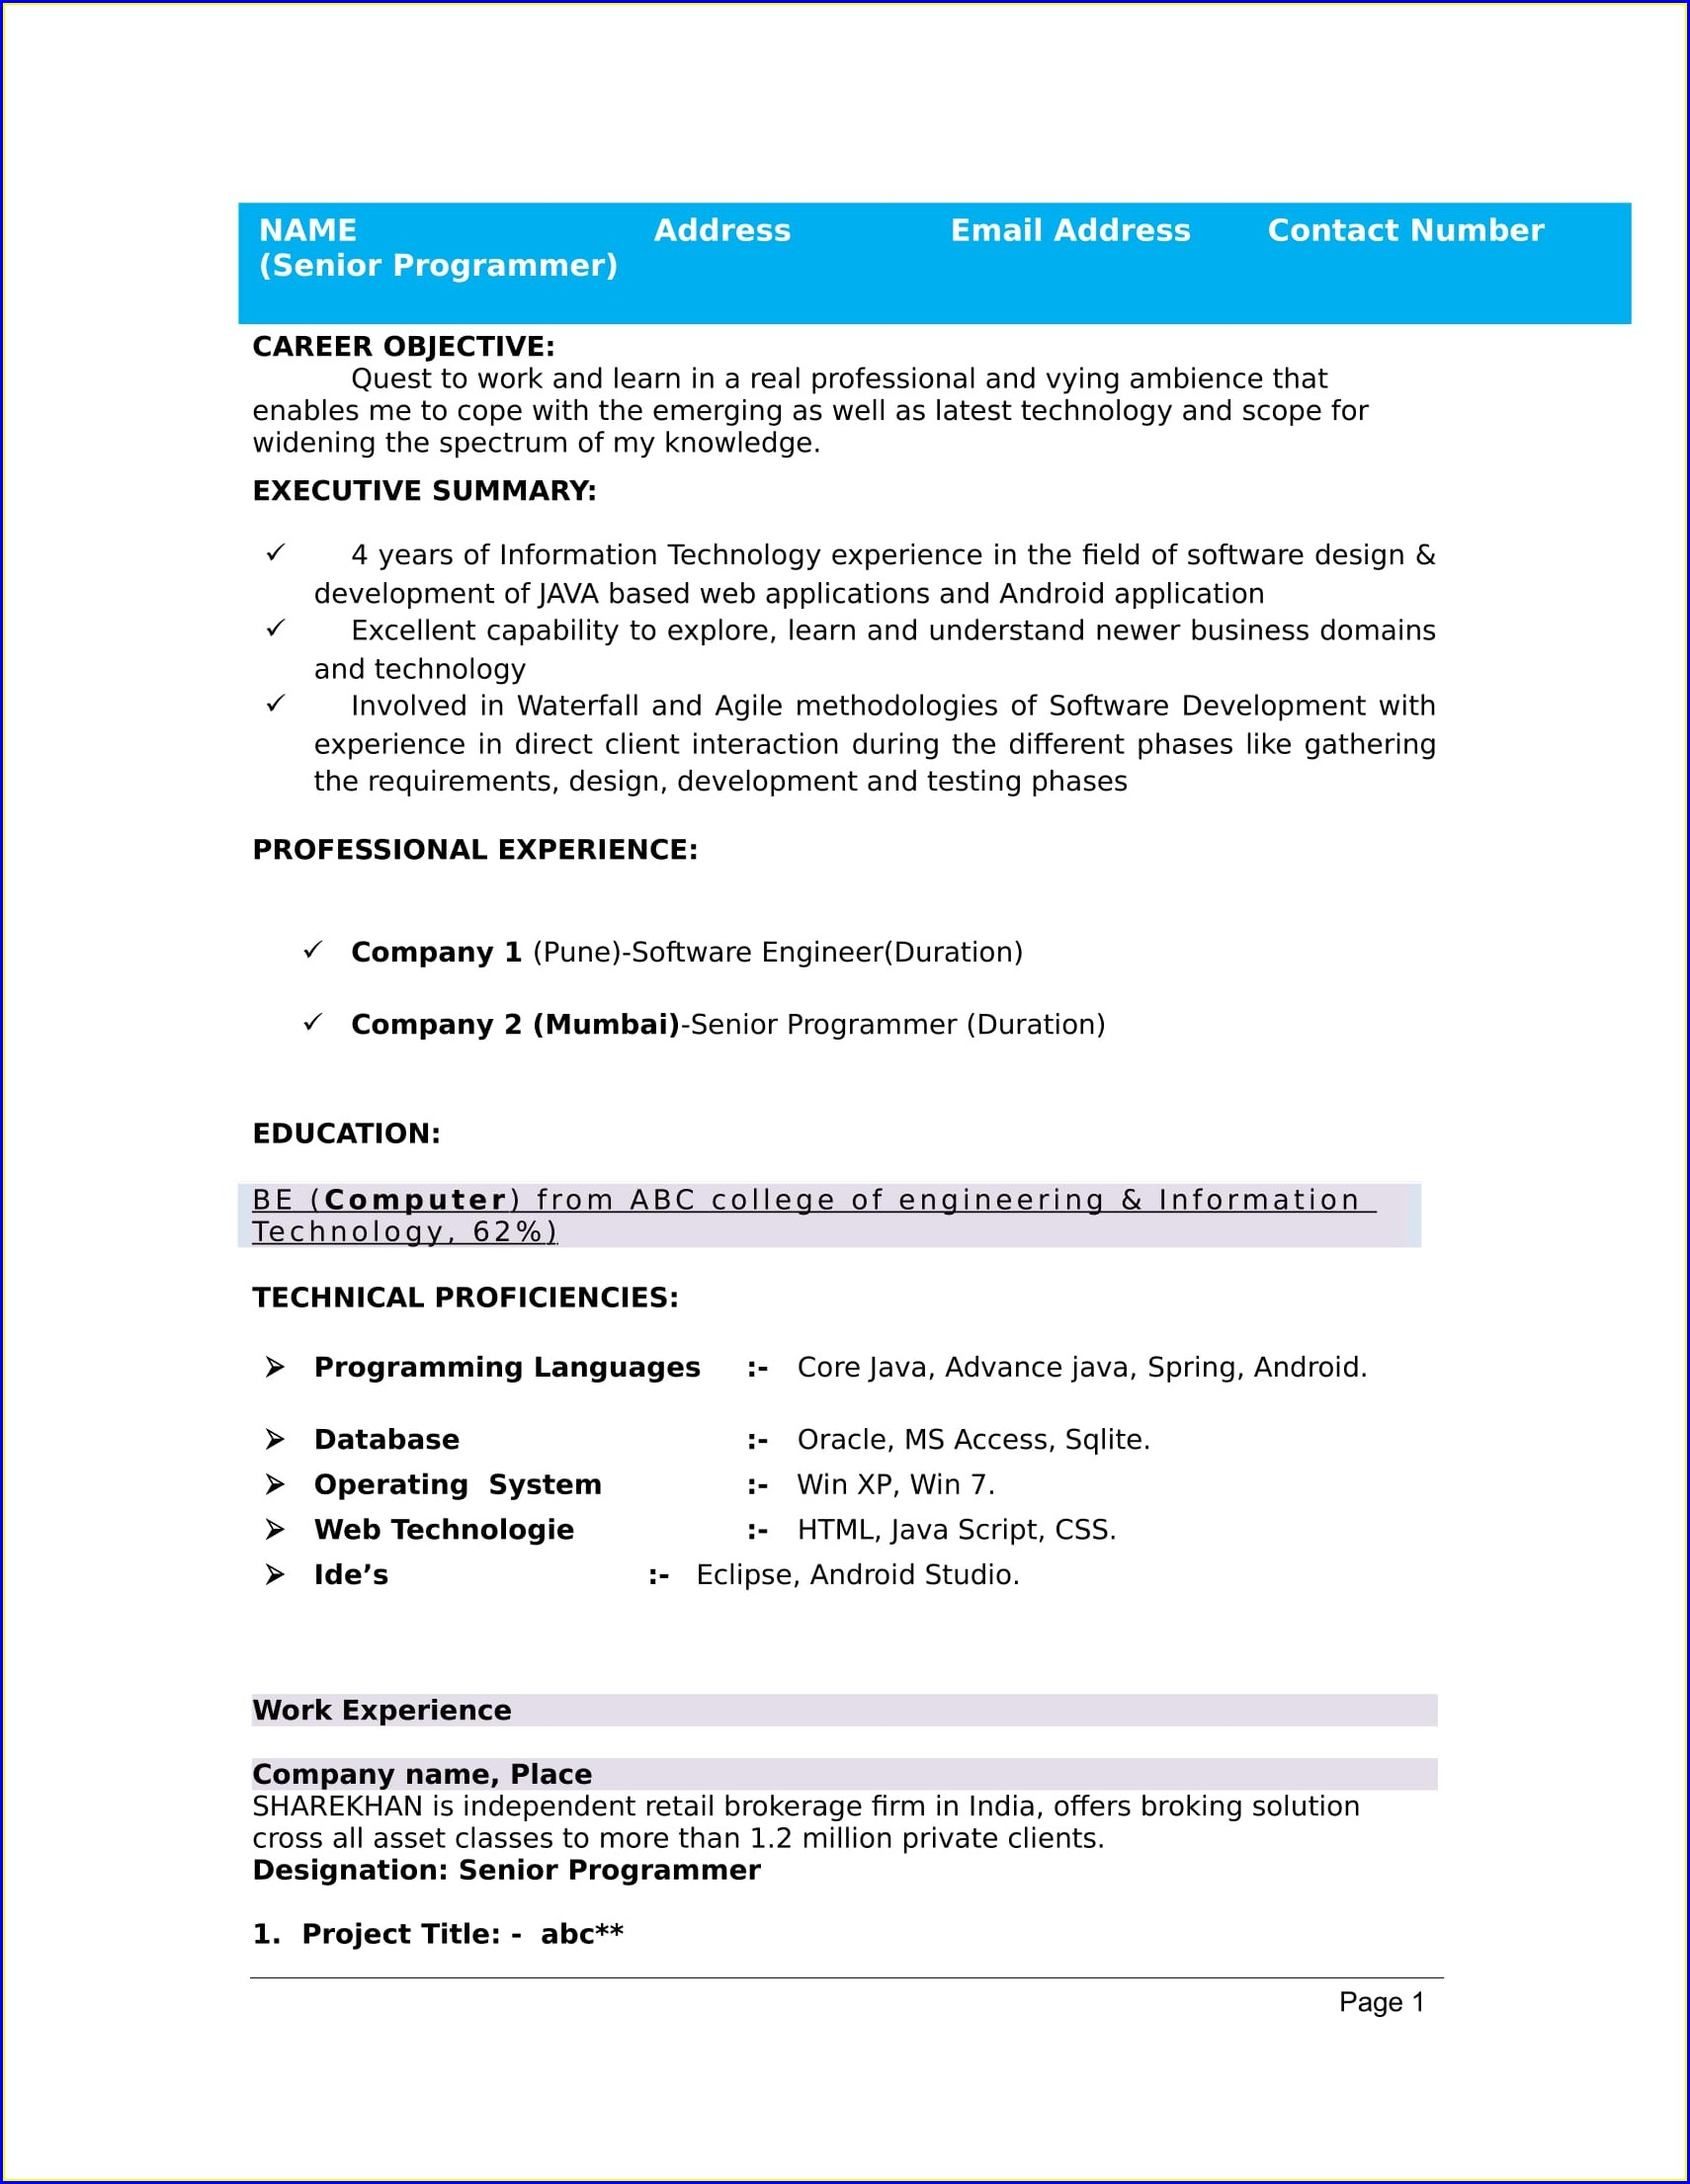 Resume Samples For Jobs In India Download